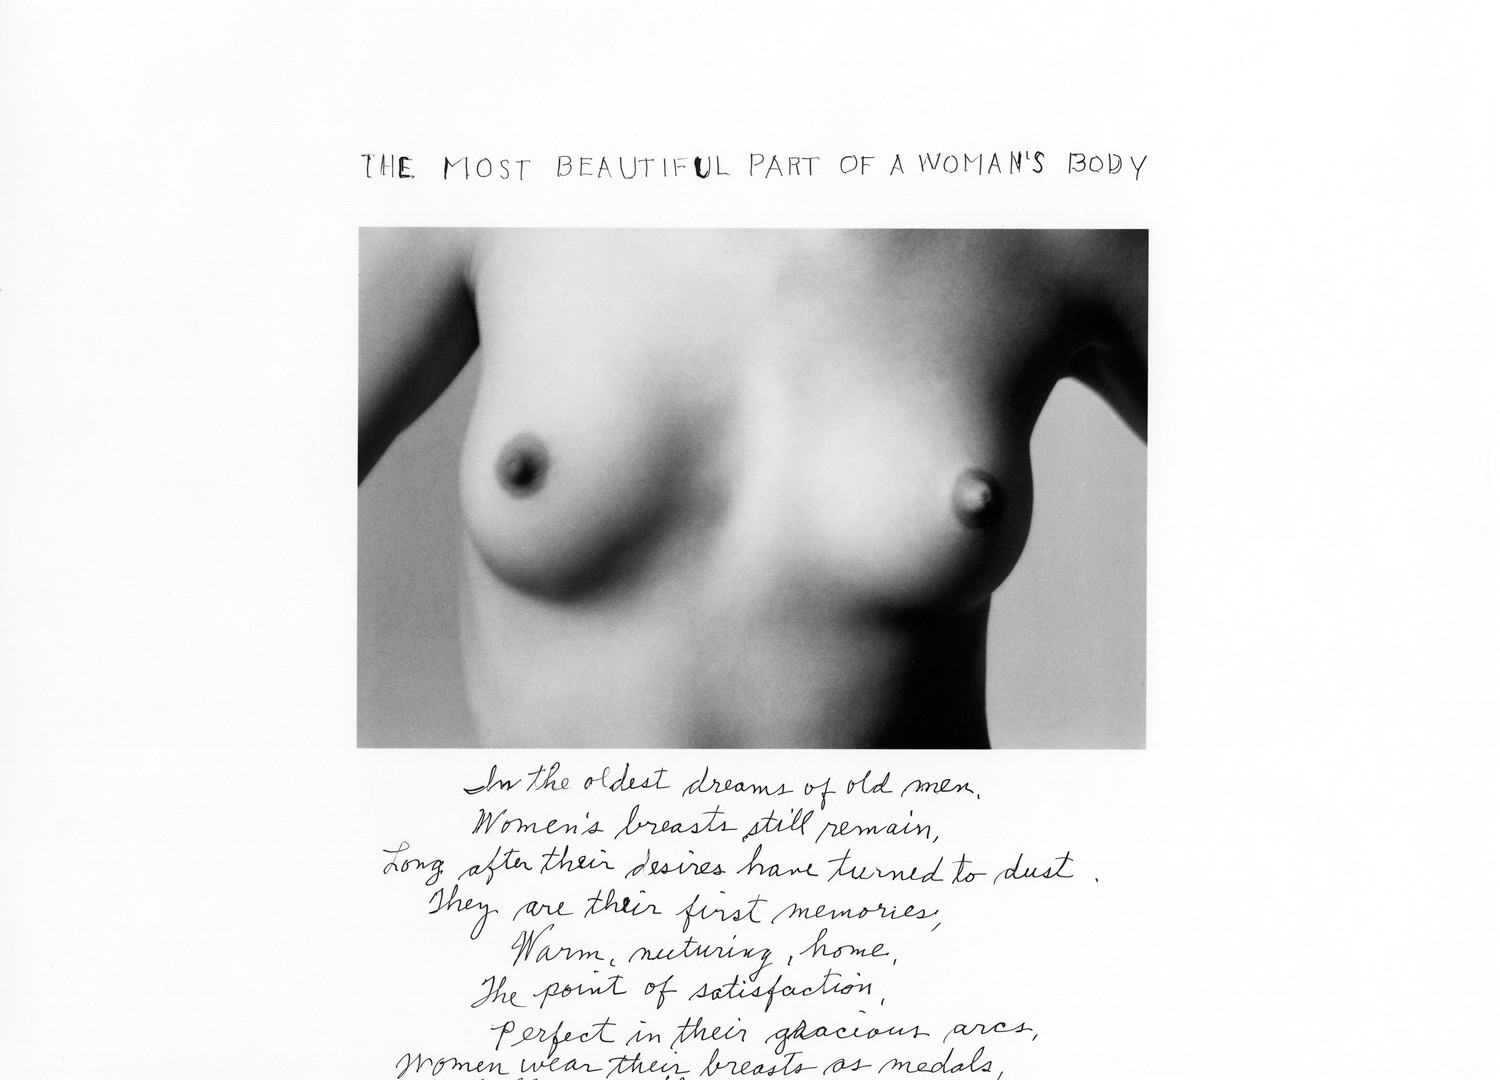 Duane Michals, The Most Beautiful Part of a Woman's Body, 1986